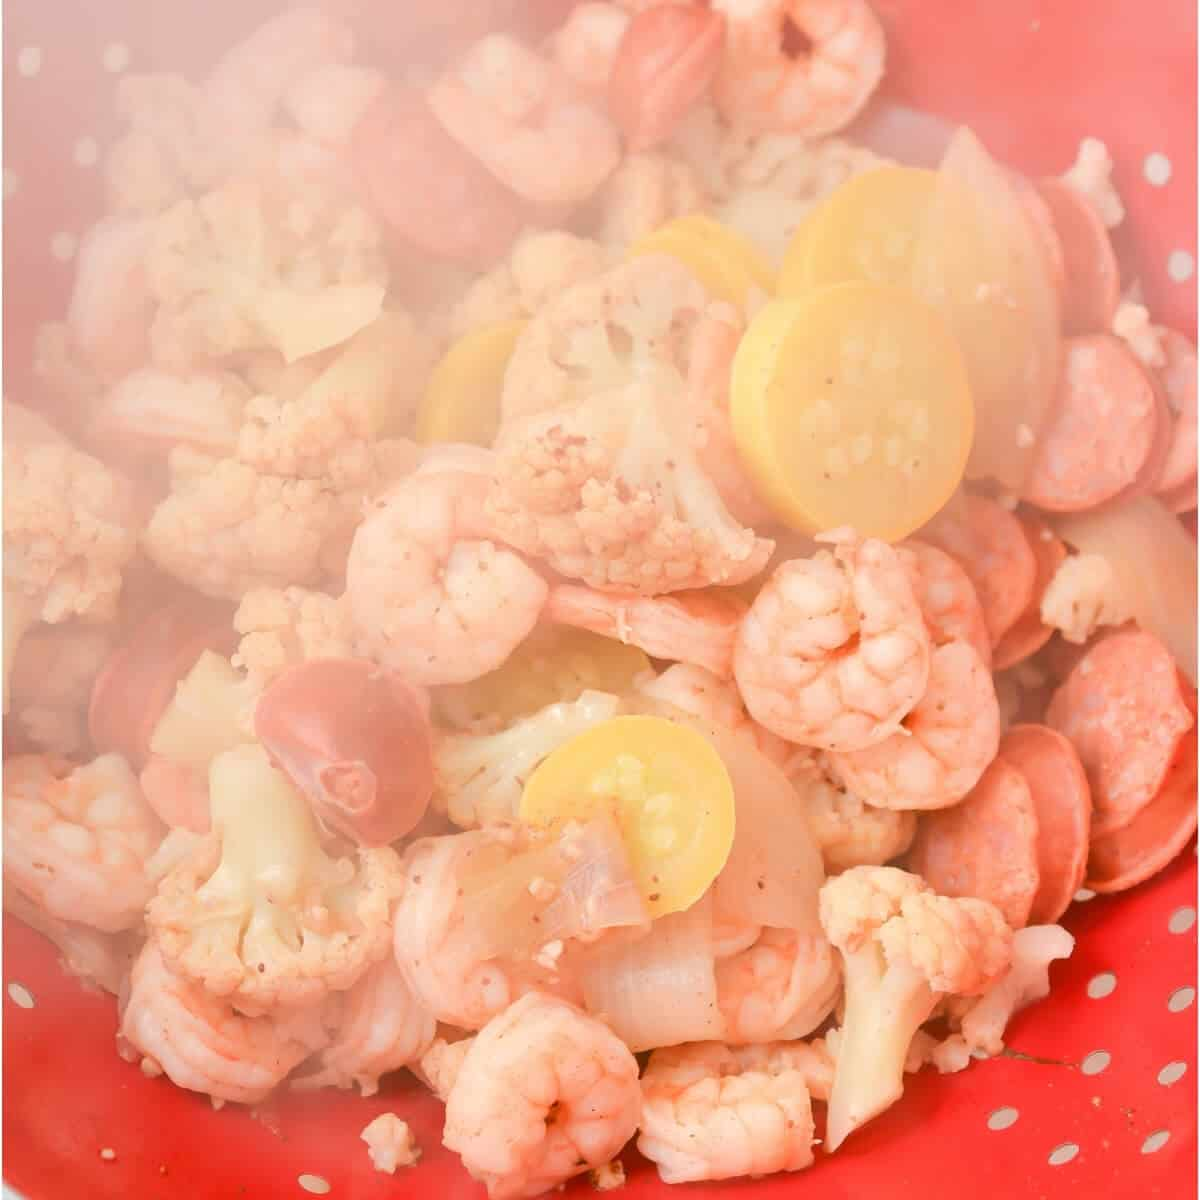 draining the shrimp boil after cooking